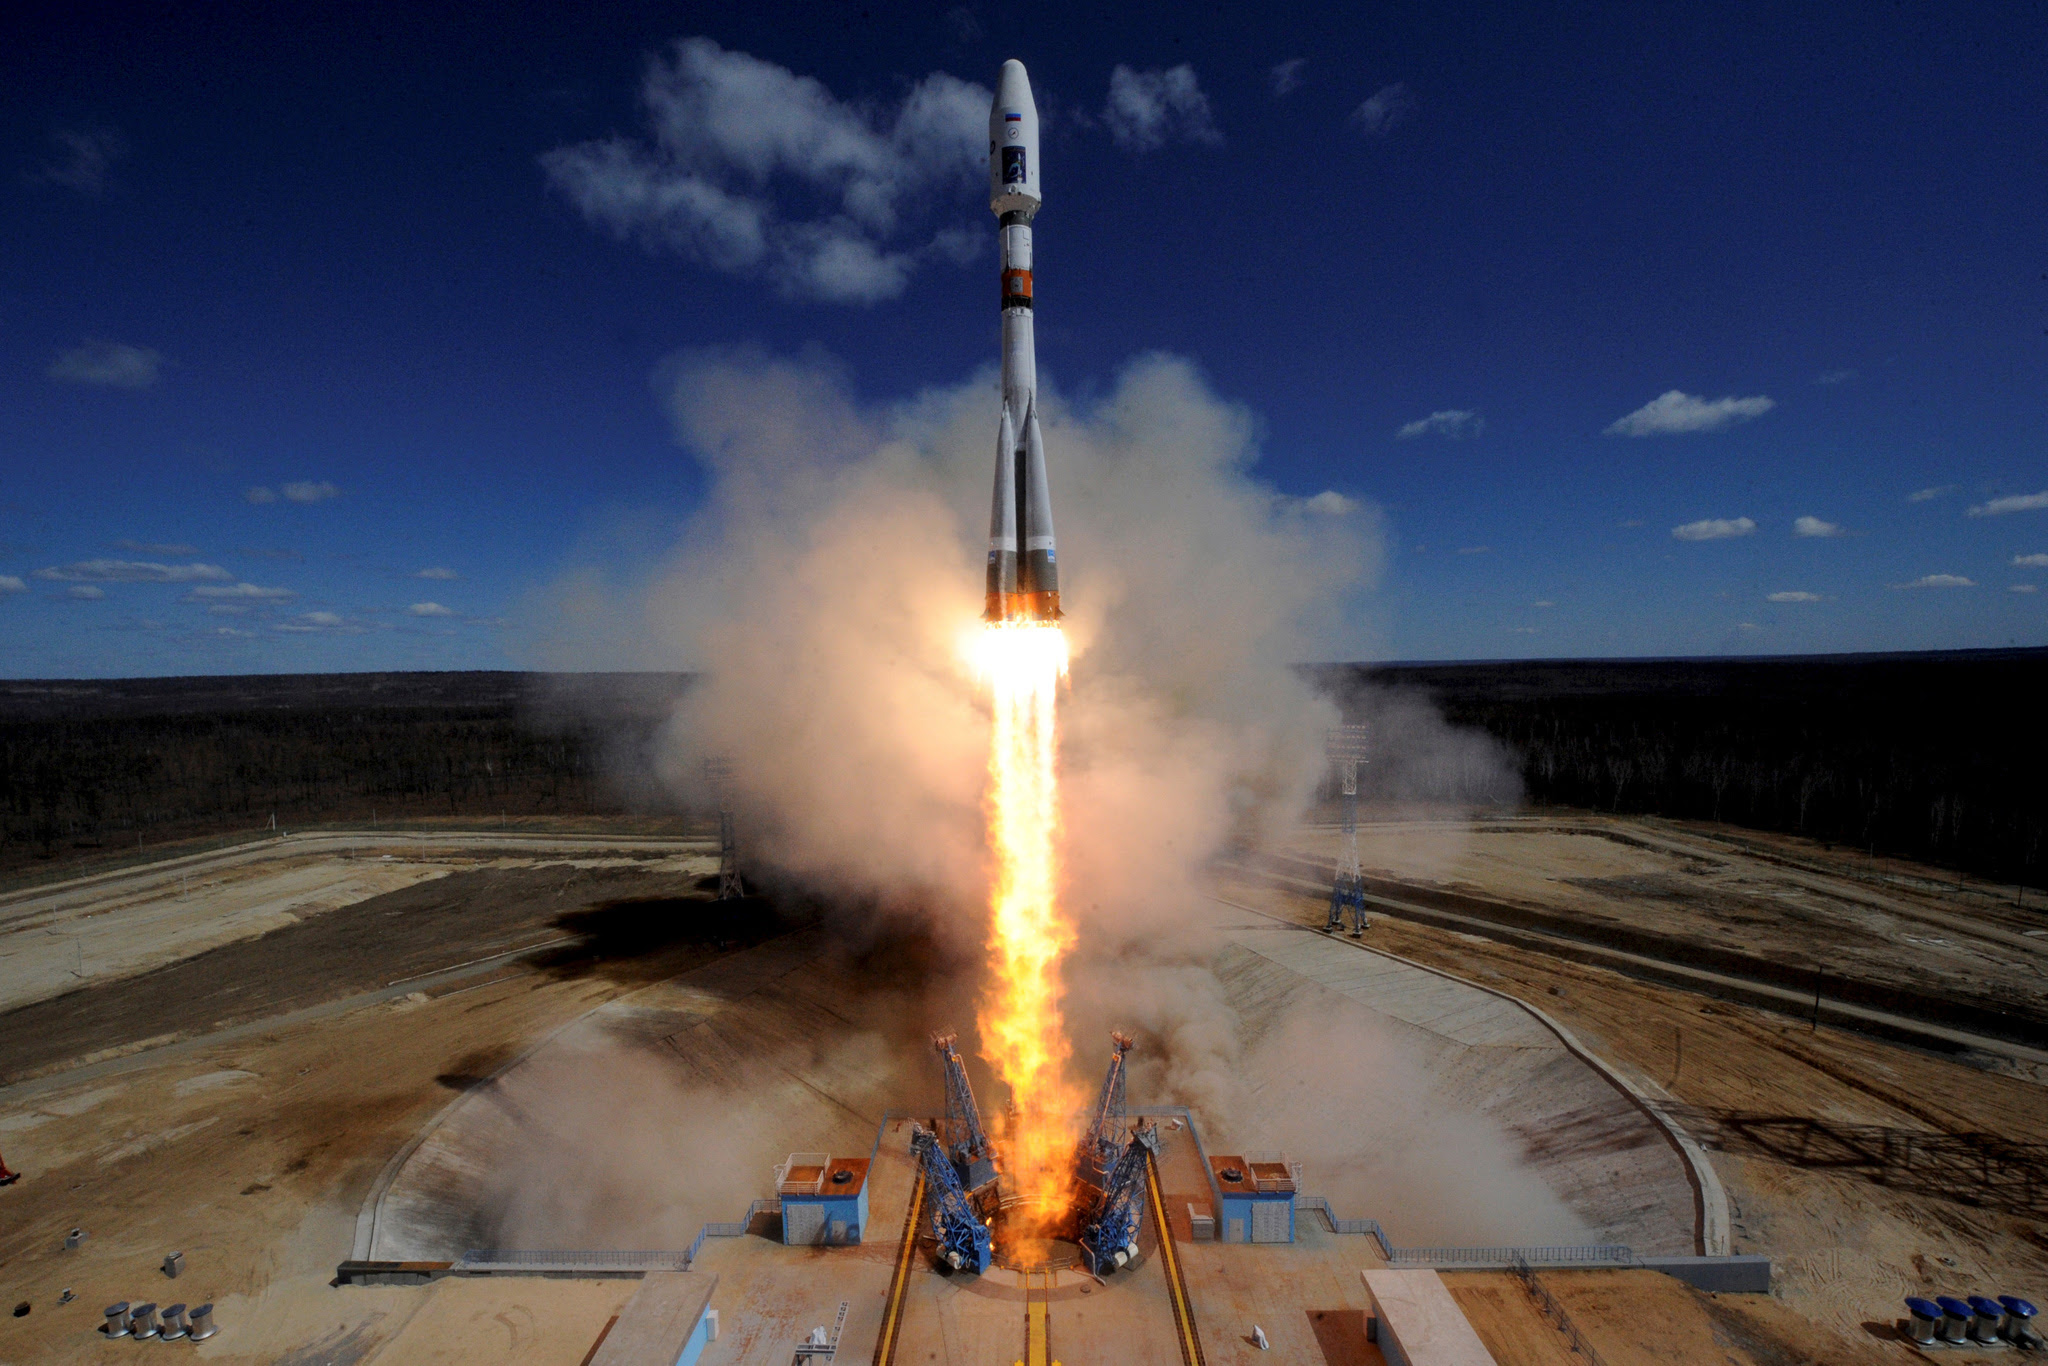 A Russian Soyuz 2.1A rocket carrying Lomonosov, Aist-2D and SamSat-218 satellites lifts off from the launch pad at the new Vostochny cosmodrome outside the city of Uglegorsk, about 200 kms from the city of Blagoveshchensk...A Russian Soyuz 2.1A rocket carrying Lomonosov, Aist-2D and SamSat-218 satellites lifts off from the launch pad at the new Vostochny cosmodrome outside the city of Uglegorsk, about 200 kms from the city of Blagoveshchensk in the far eastern Amur region, Russia April 28, 2016.  REUTERS/Kirill Kudryavtsev/Pool